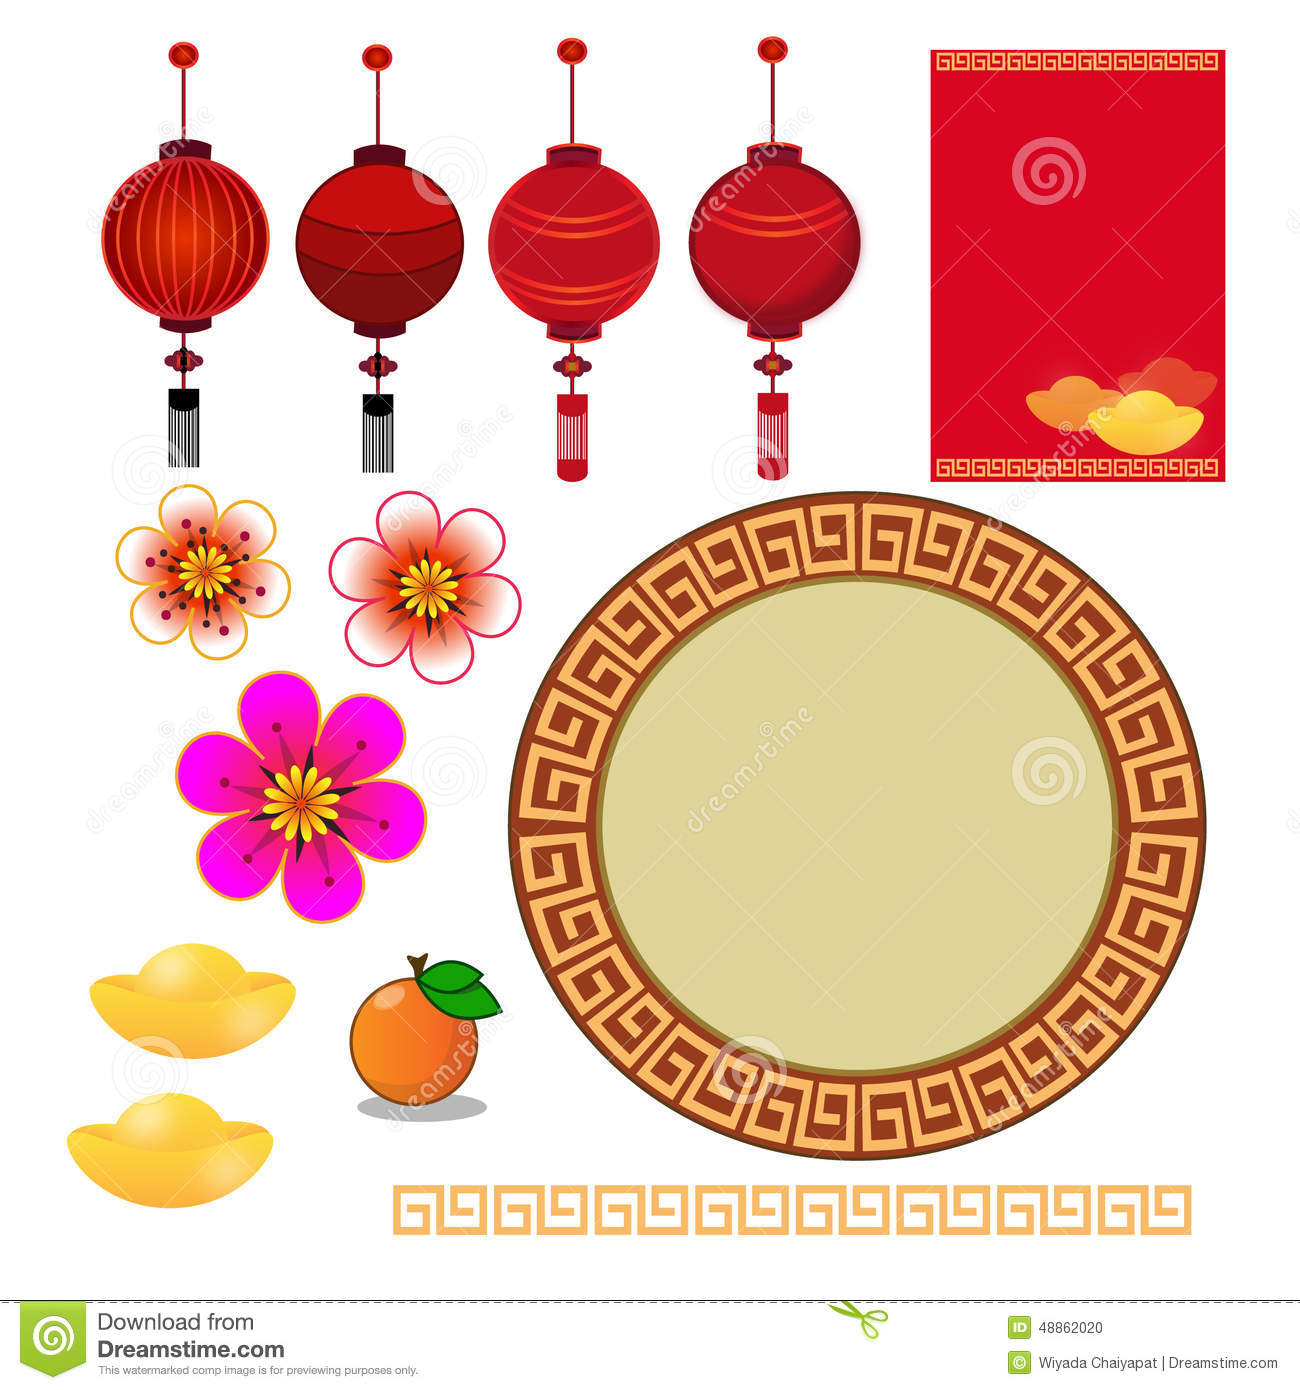 Modern Cny Wall Decoration Images - Wall Art Collections ...